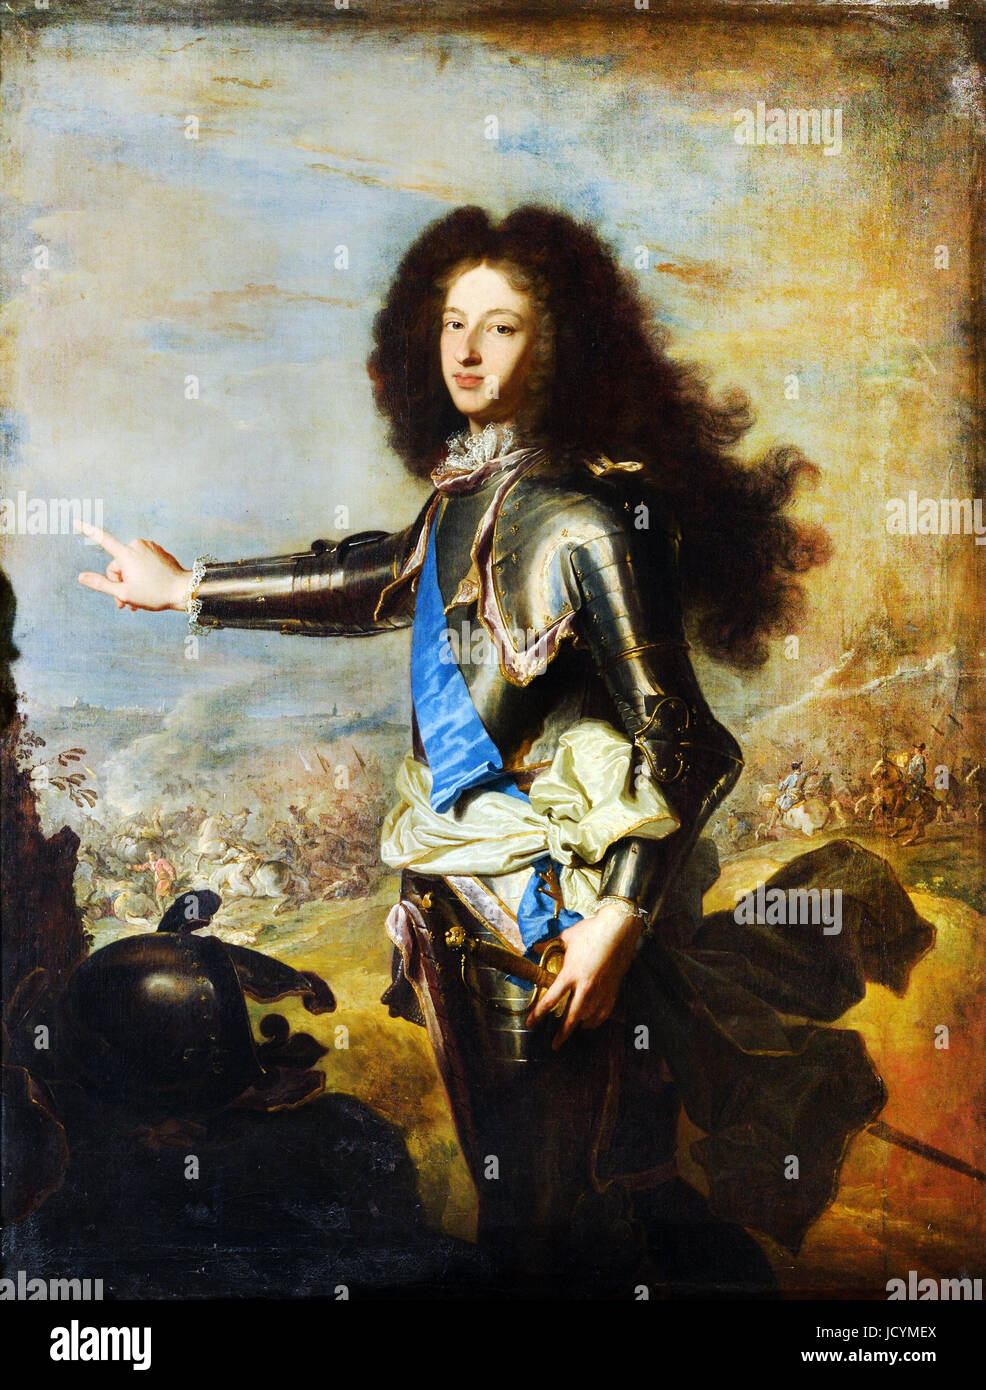 Hyacinthe Rigaud, Louis de France, Duke of Burgundy (1682-1712). Circa 1704. Oil on canvas. Palace of Versailles, - Stock Image